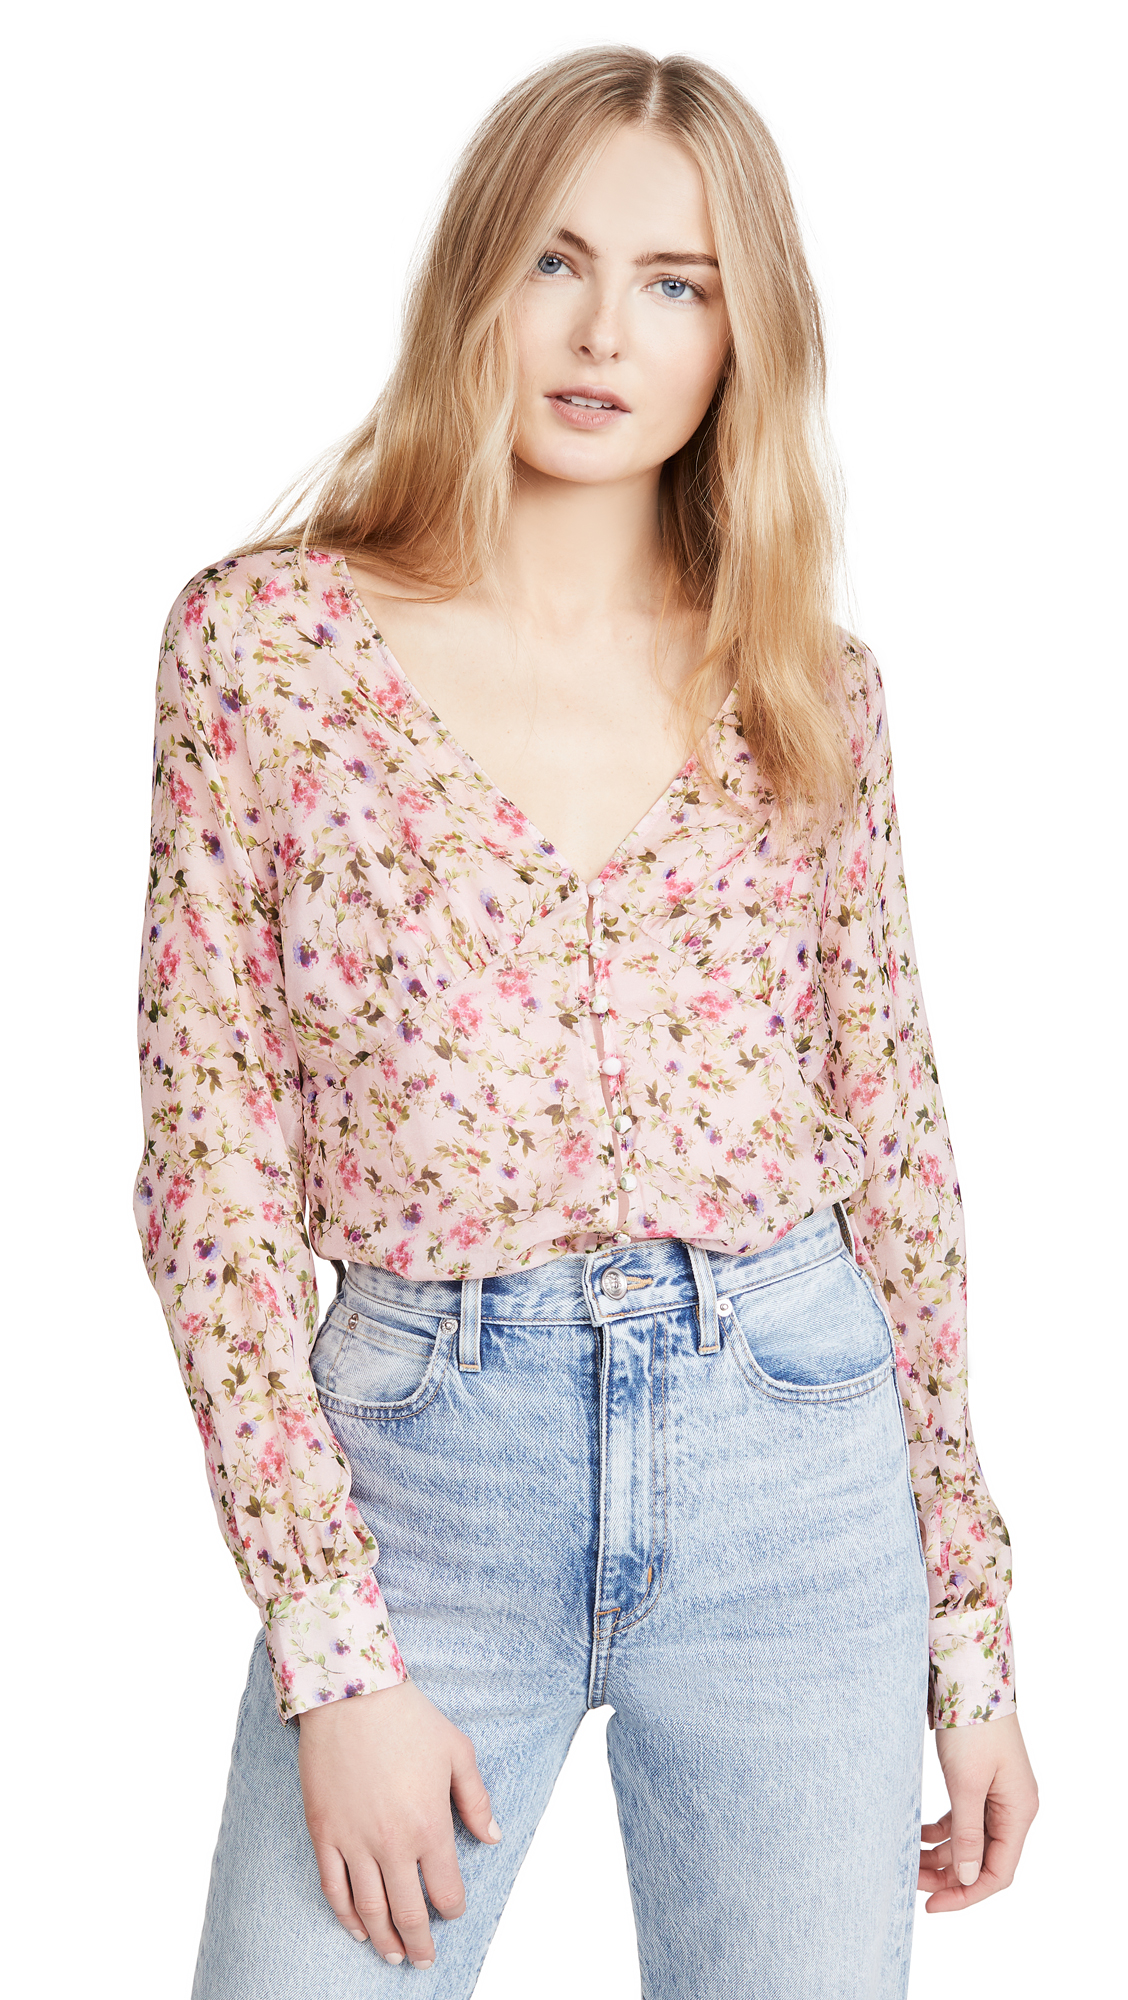 CAMI NYC The Hope Bodysuit - 30% Off Sale